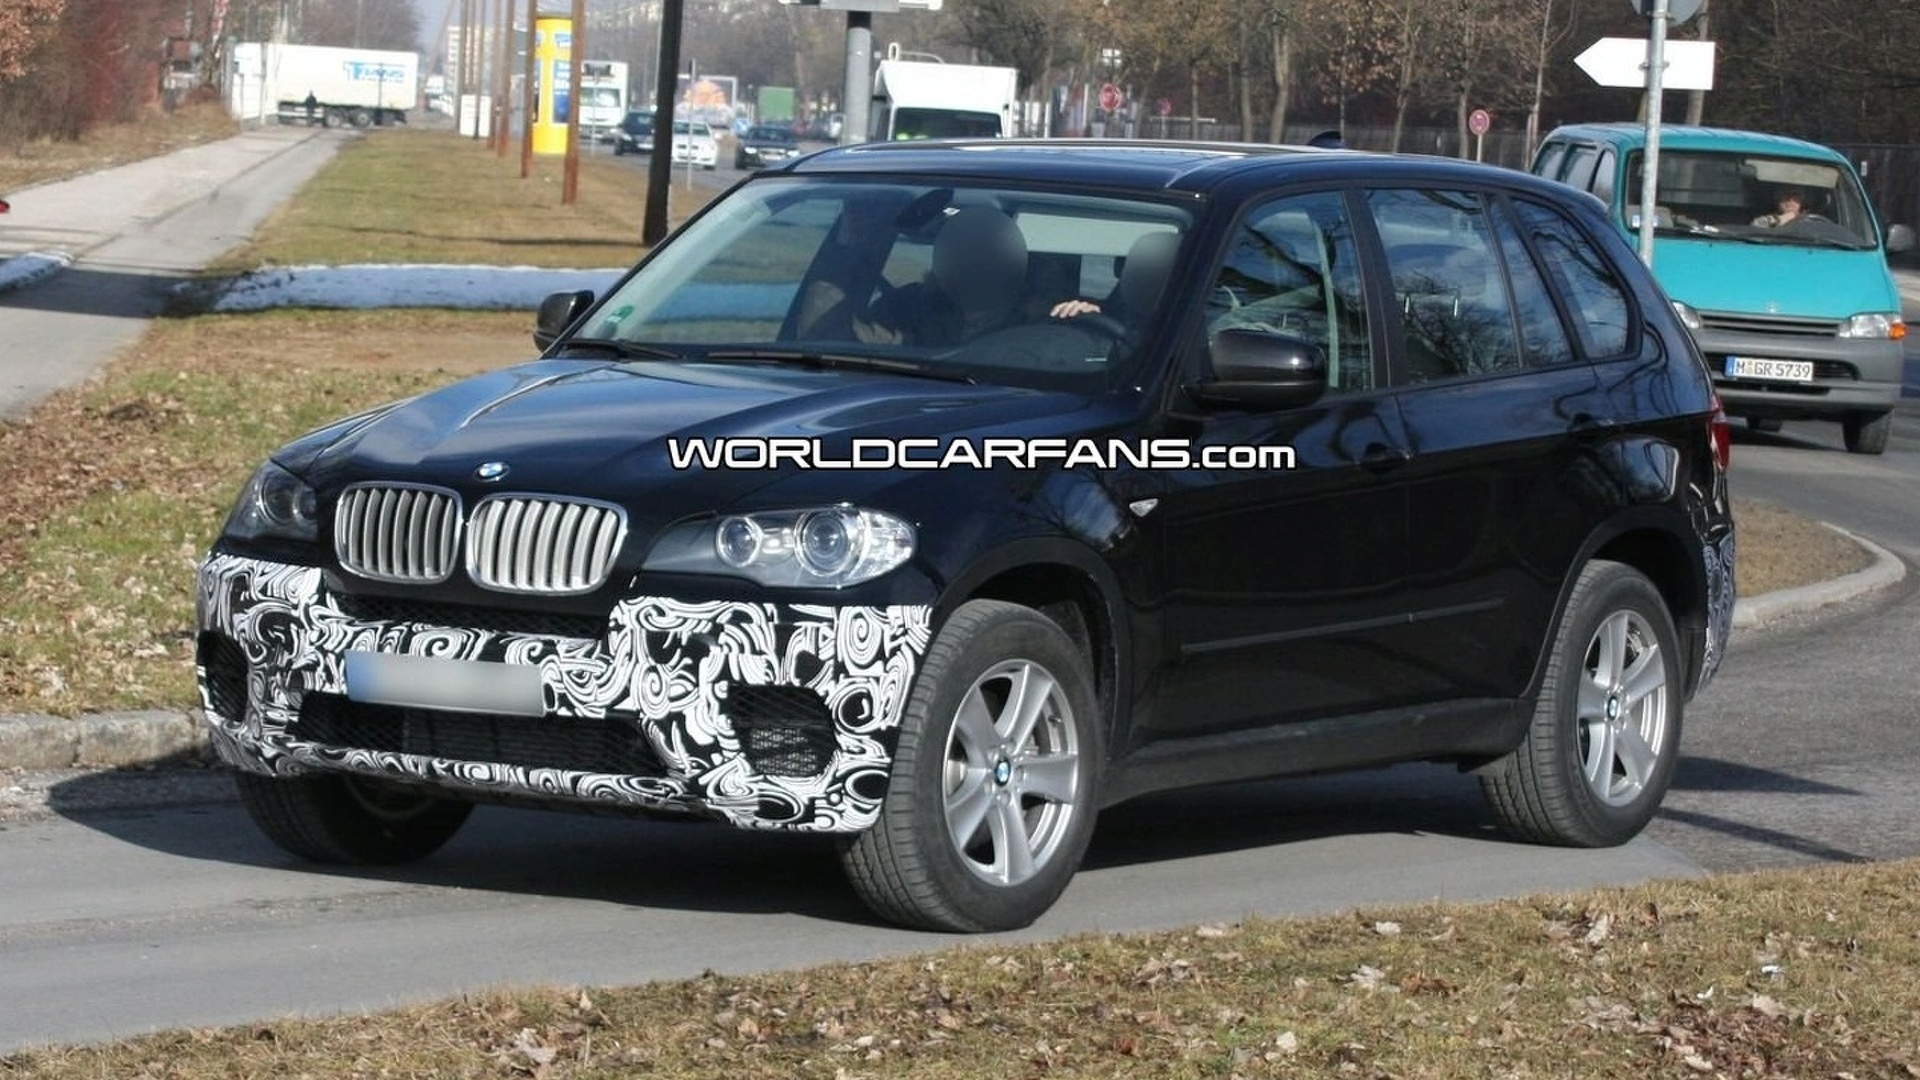 BMW X5 Facelift Spy Photos - Yet Another Round